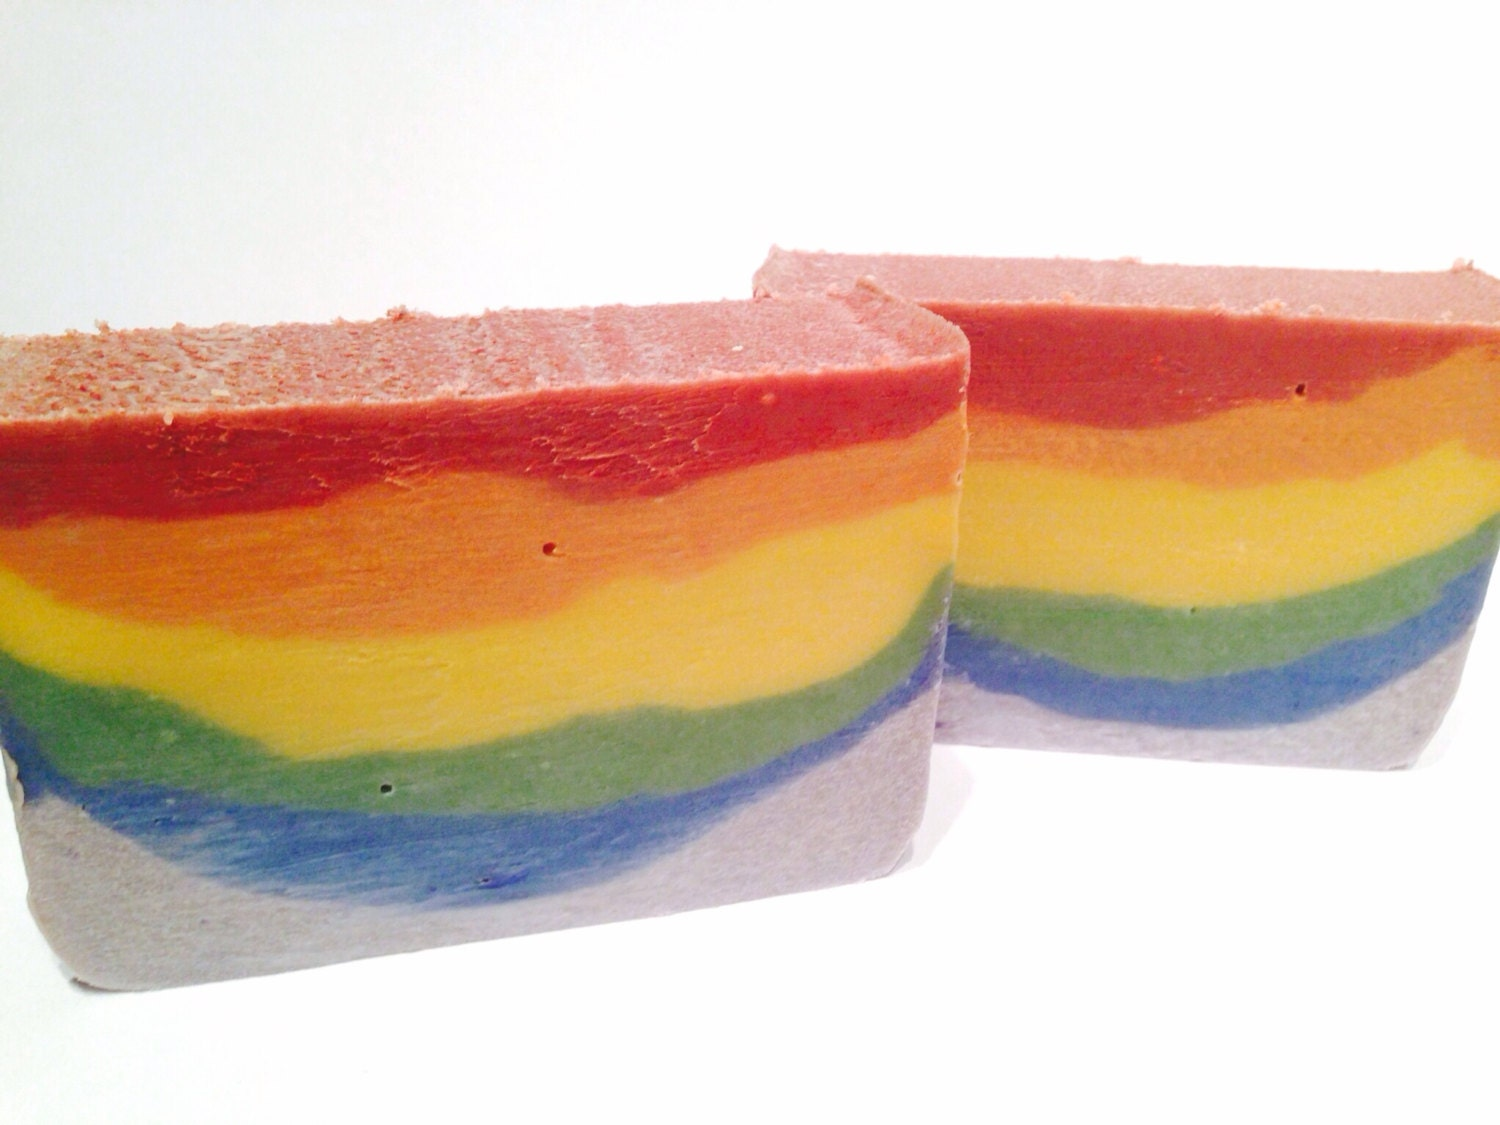 Rainbow Coconut Milk Soap- Shea Butter Soap - Pride Soap - Penori